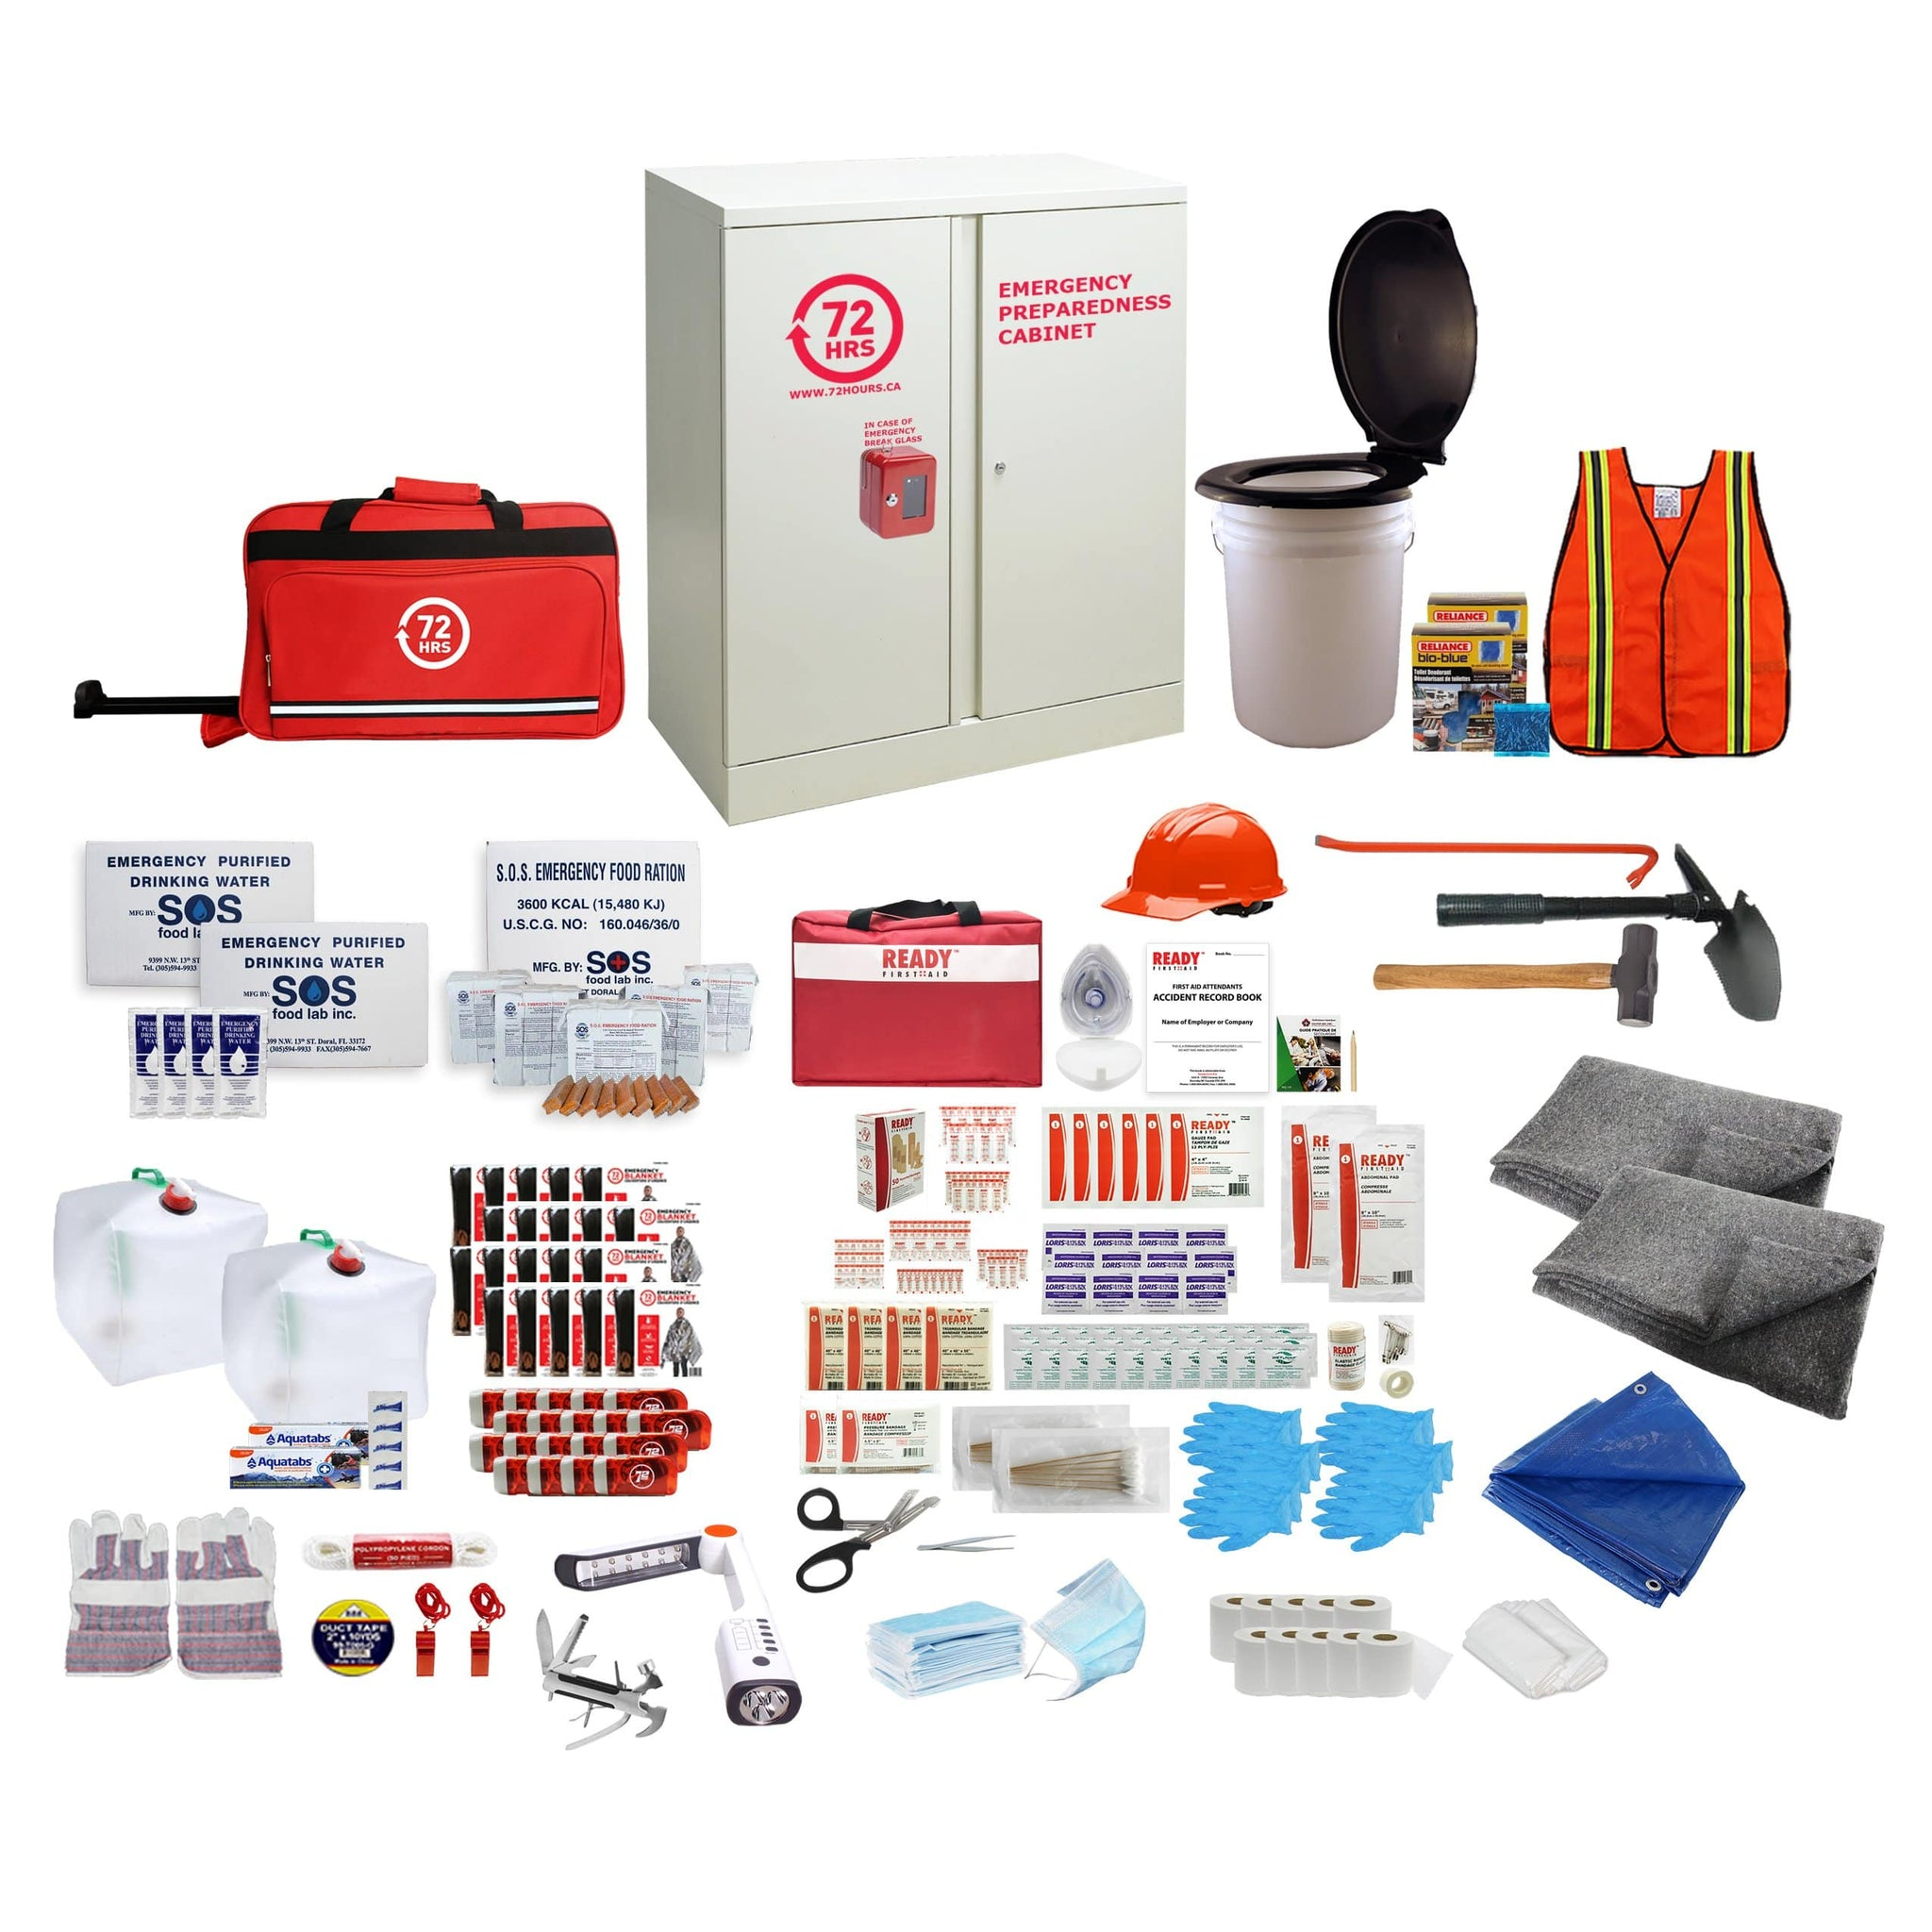 20 Person Emergency Cabinet Kit